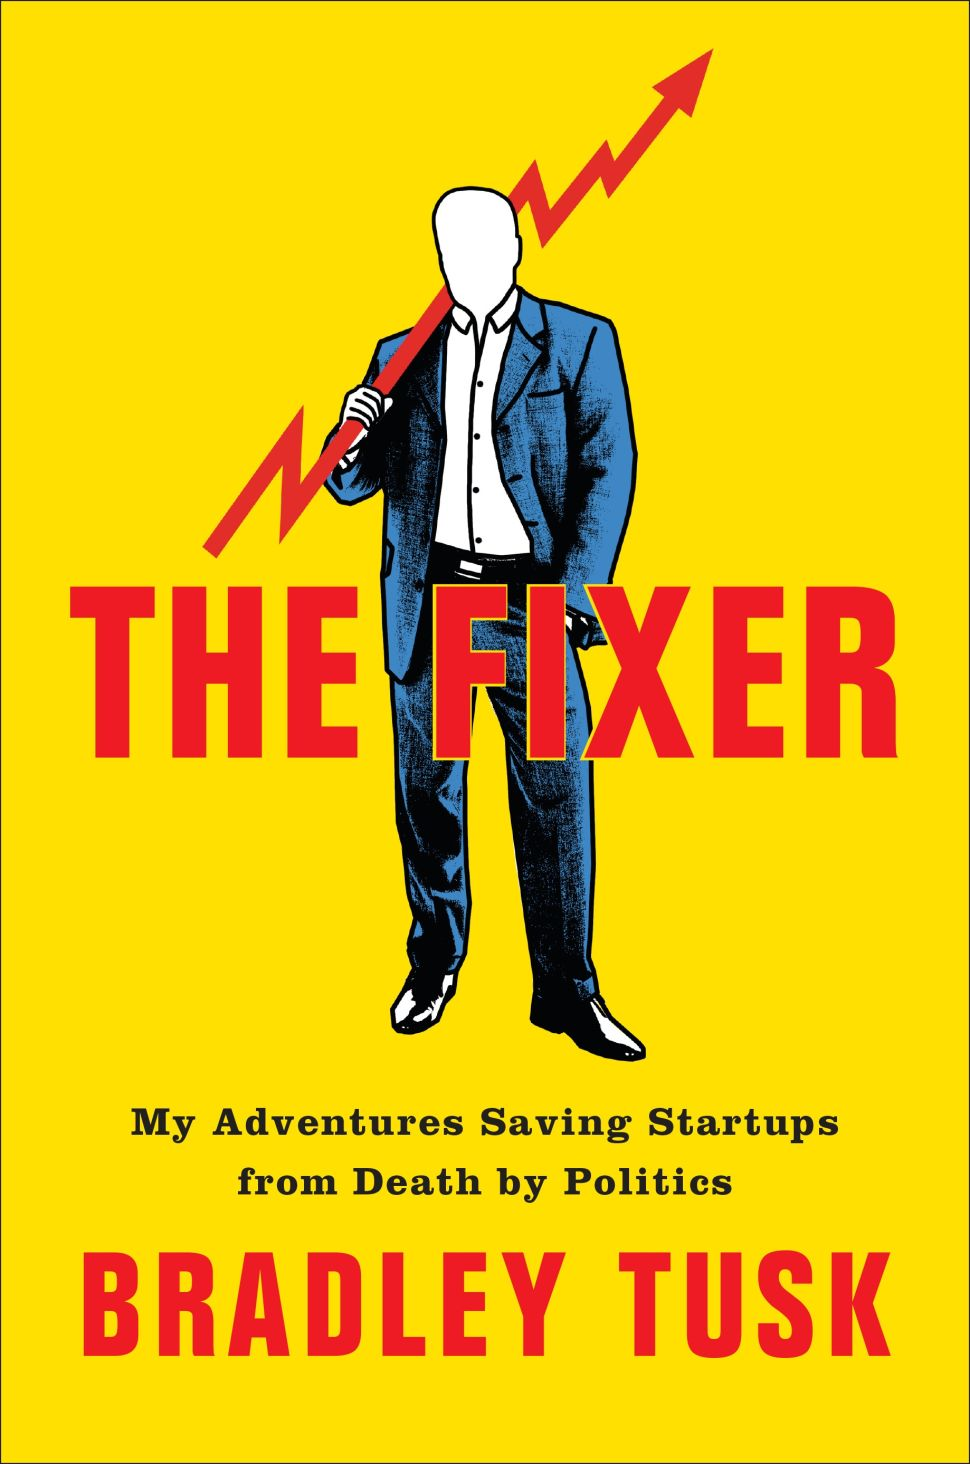 'The Fixer' by Bradley Tusk.